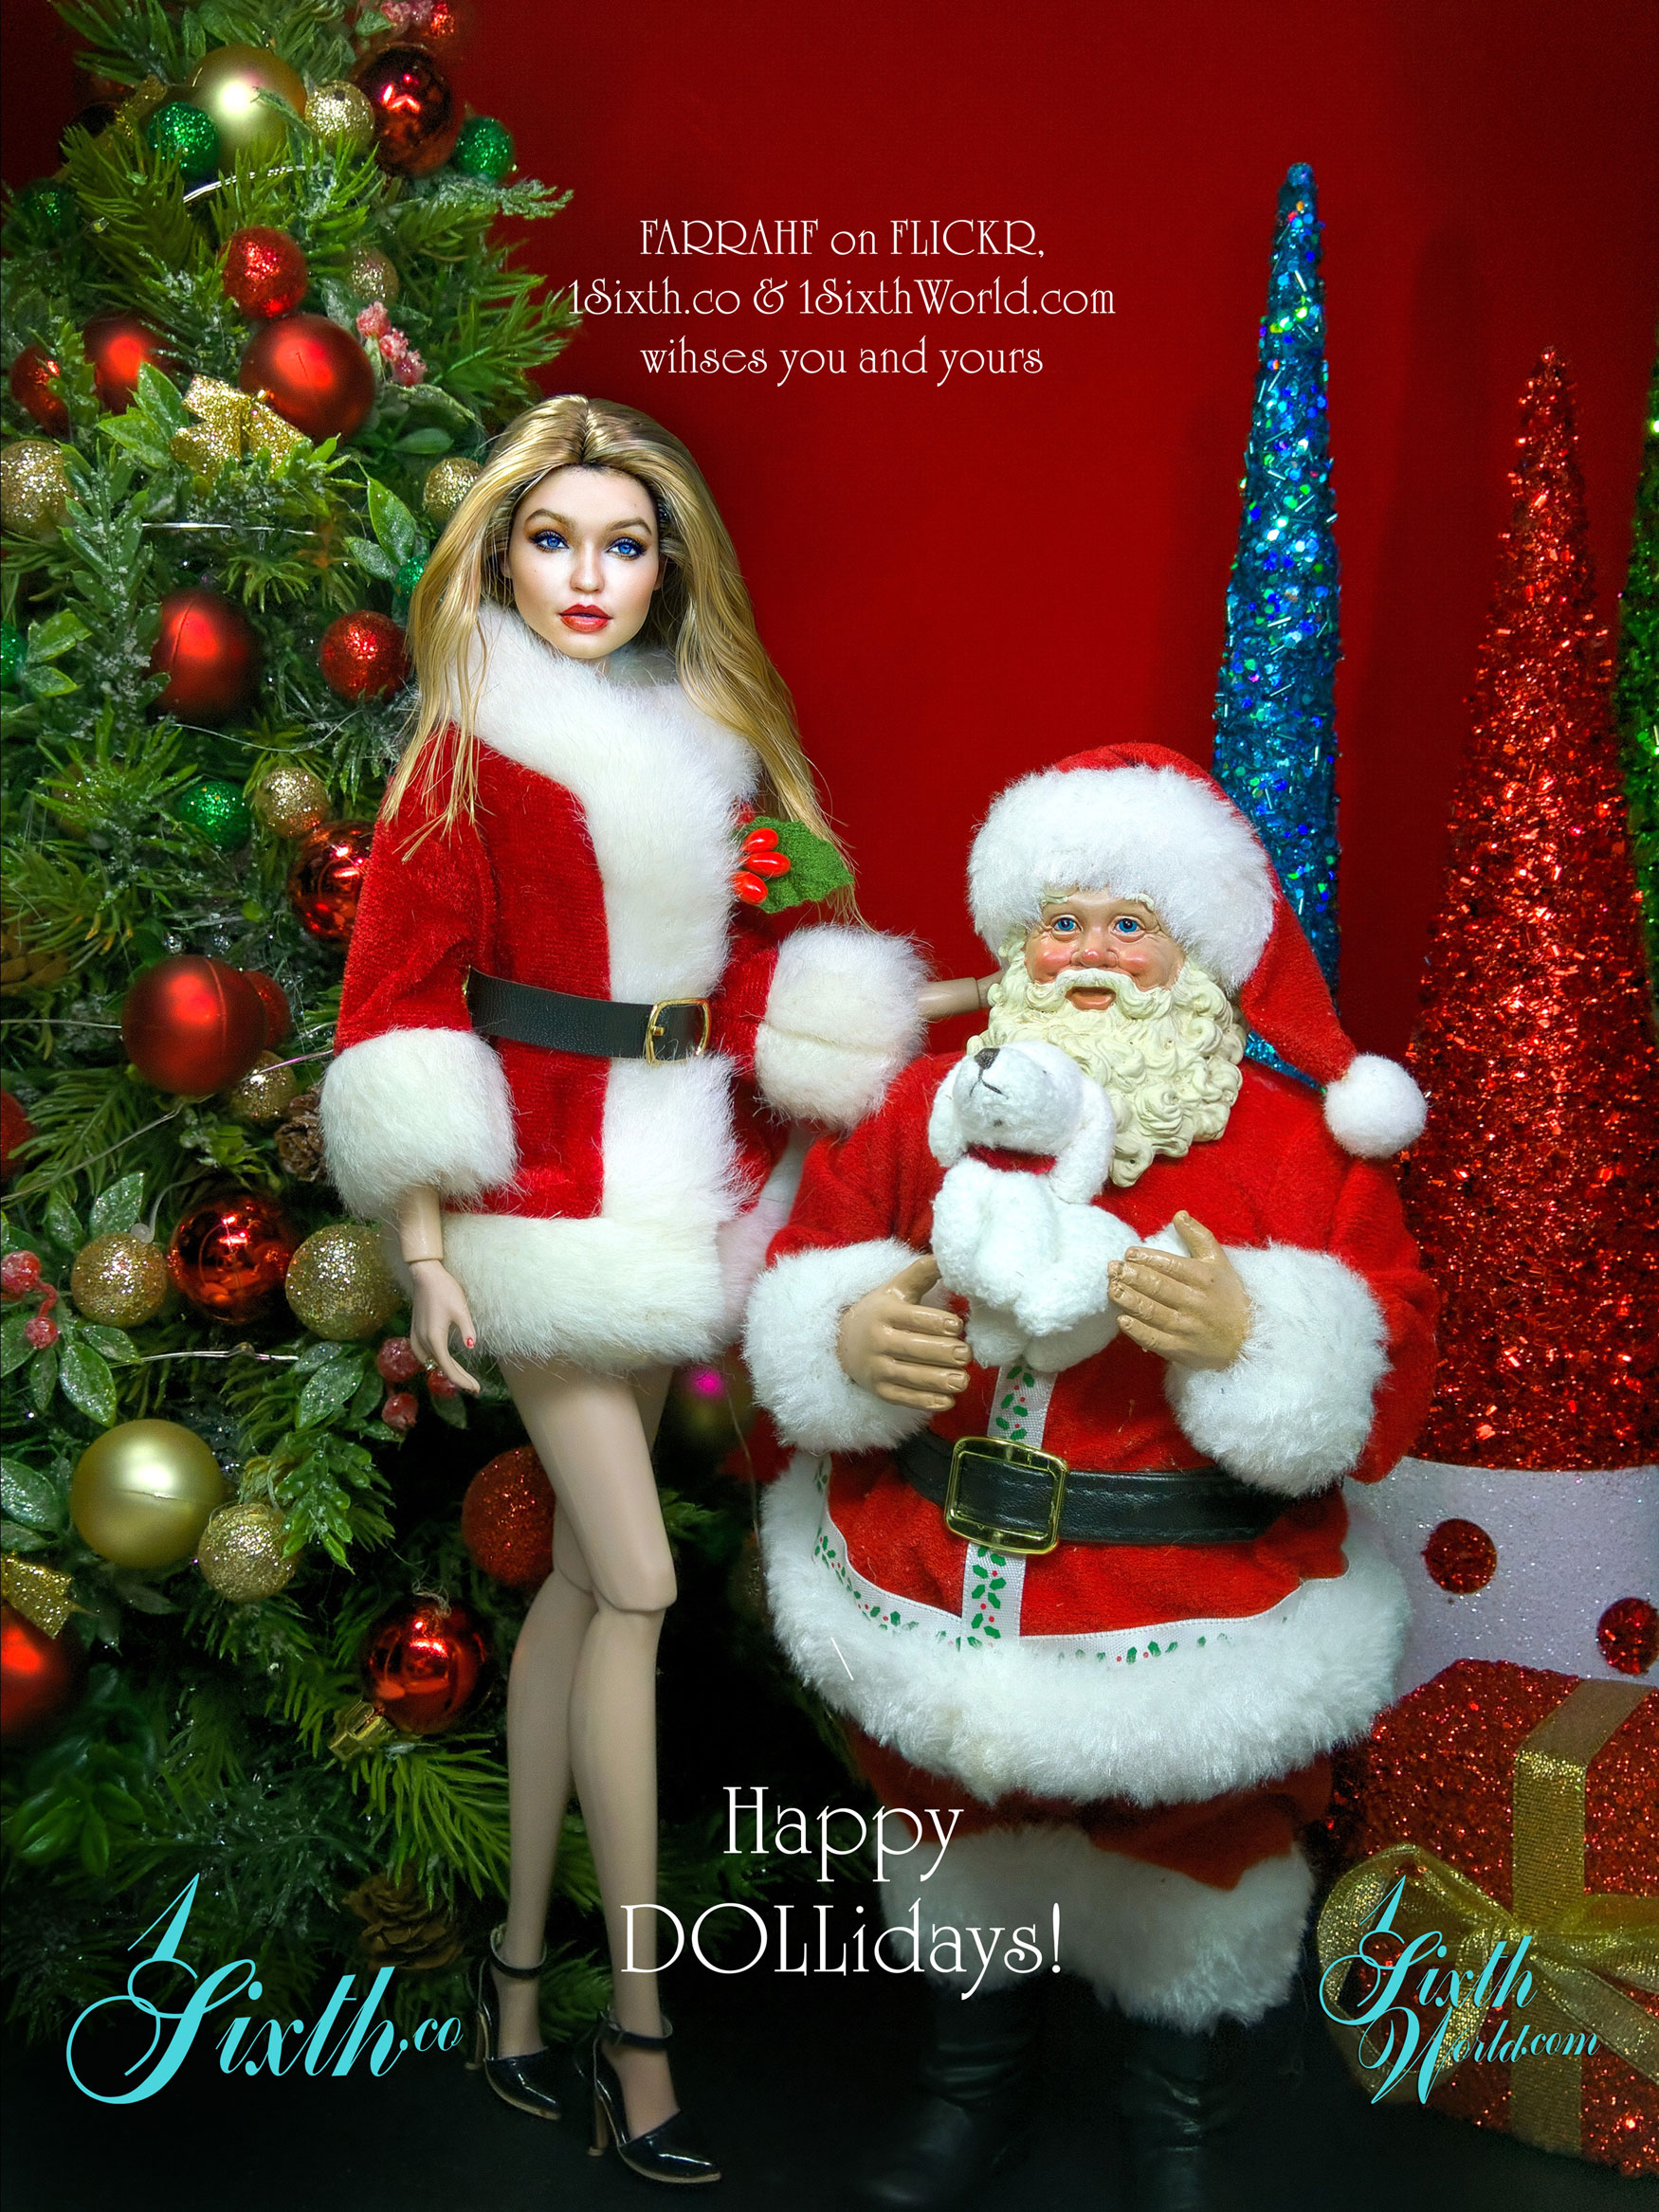 Happy DOLLidays!  From https://1sixthworld.com & https://1sixth.co & https://www.flickr.com/photos/farrahf/ A safe and healthy holiday season to you all.